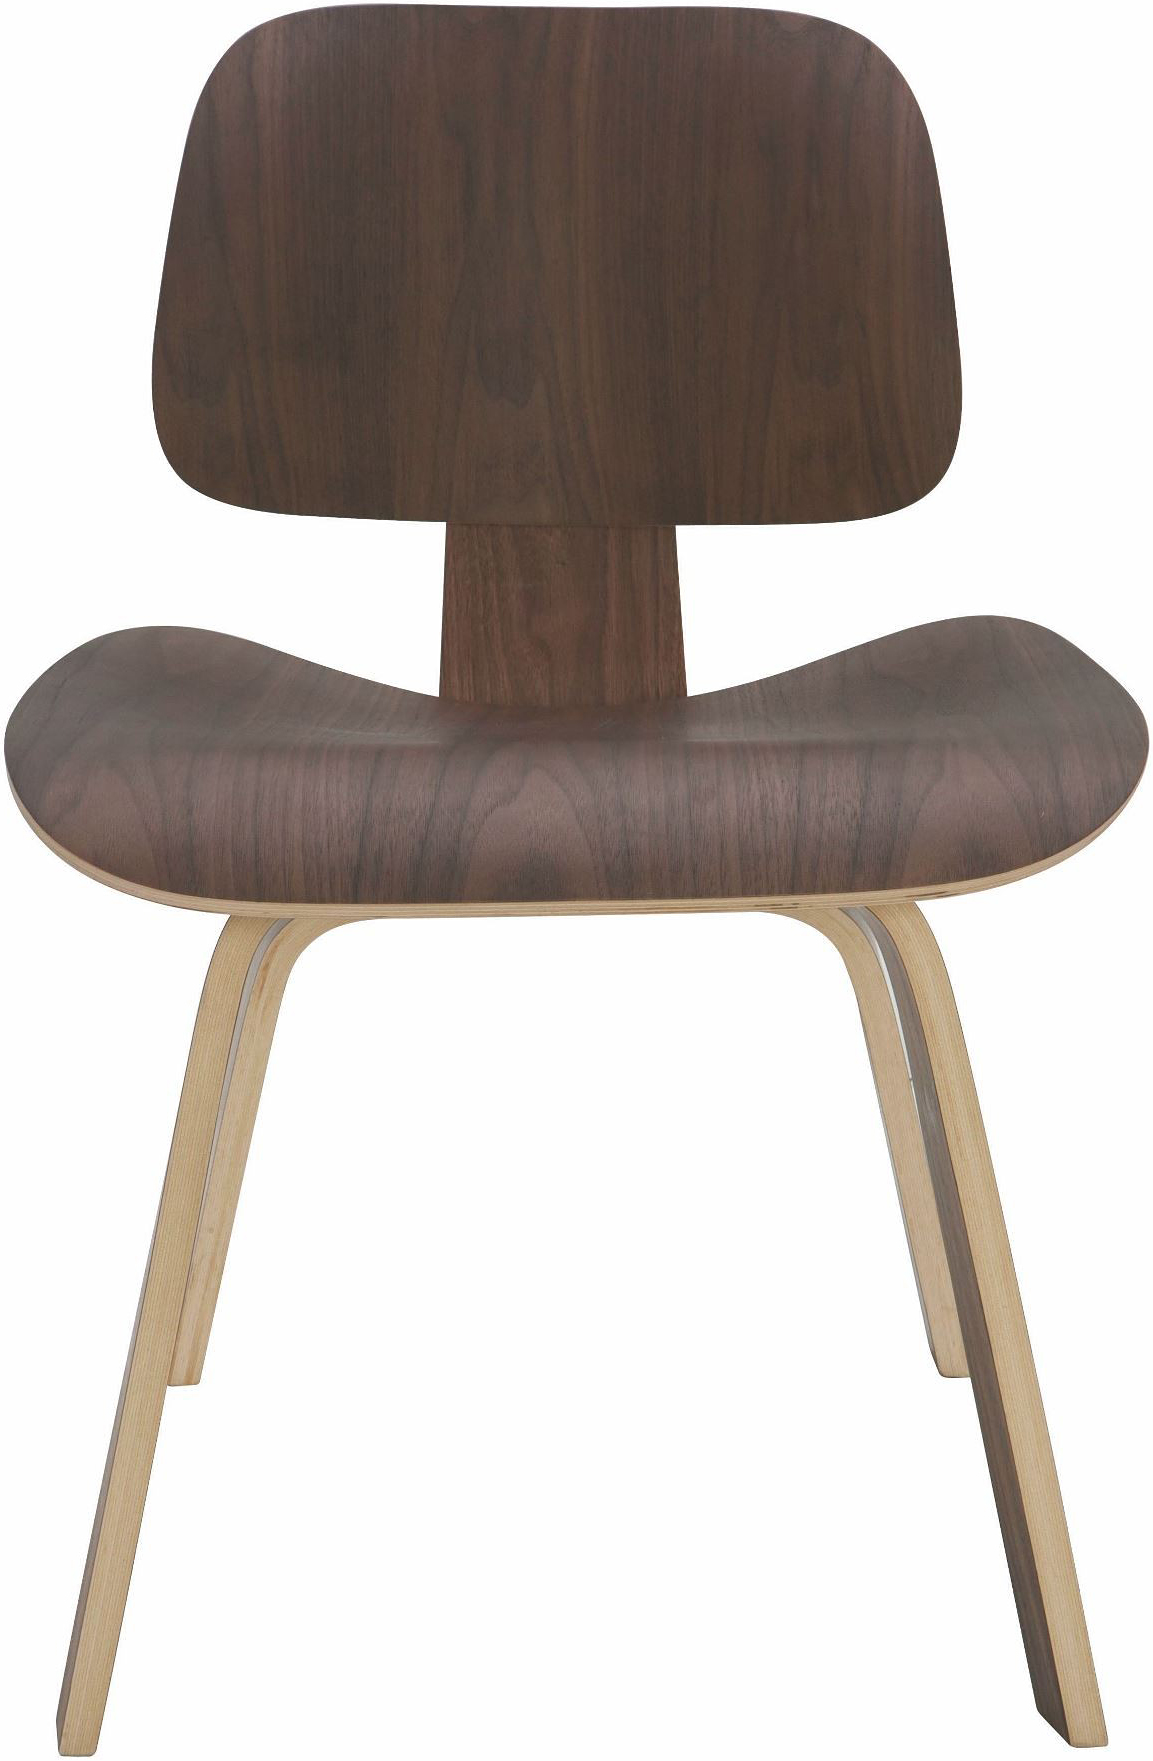 the nuevo living sophie dining chair in a walnut finish